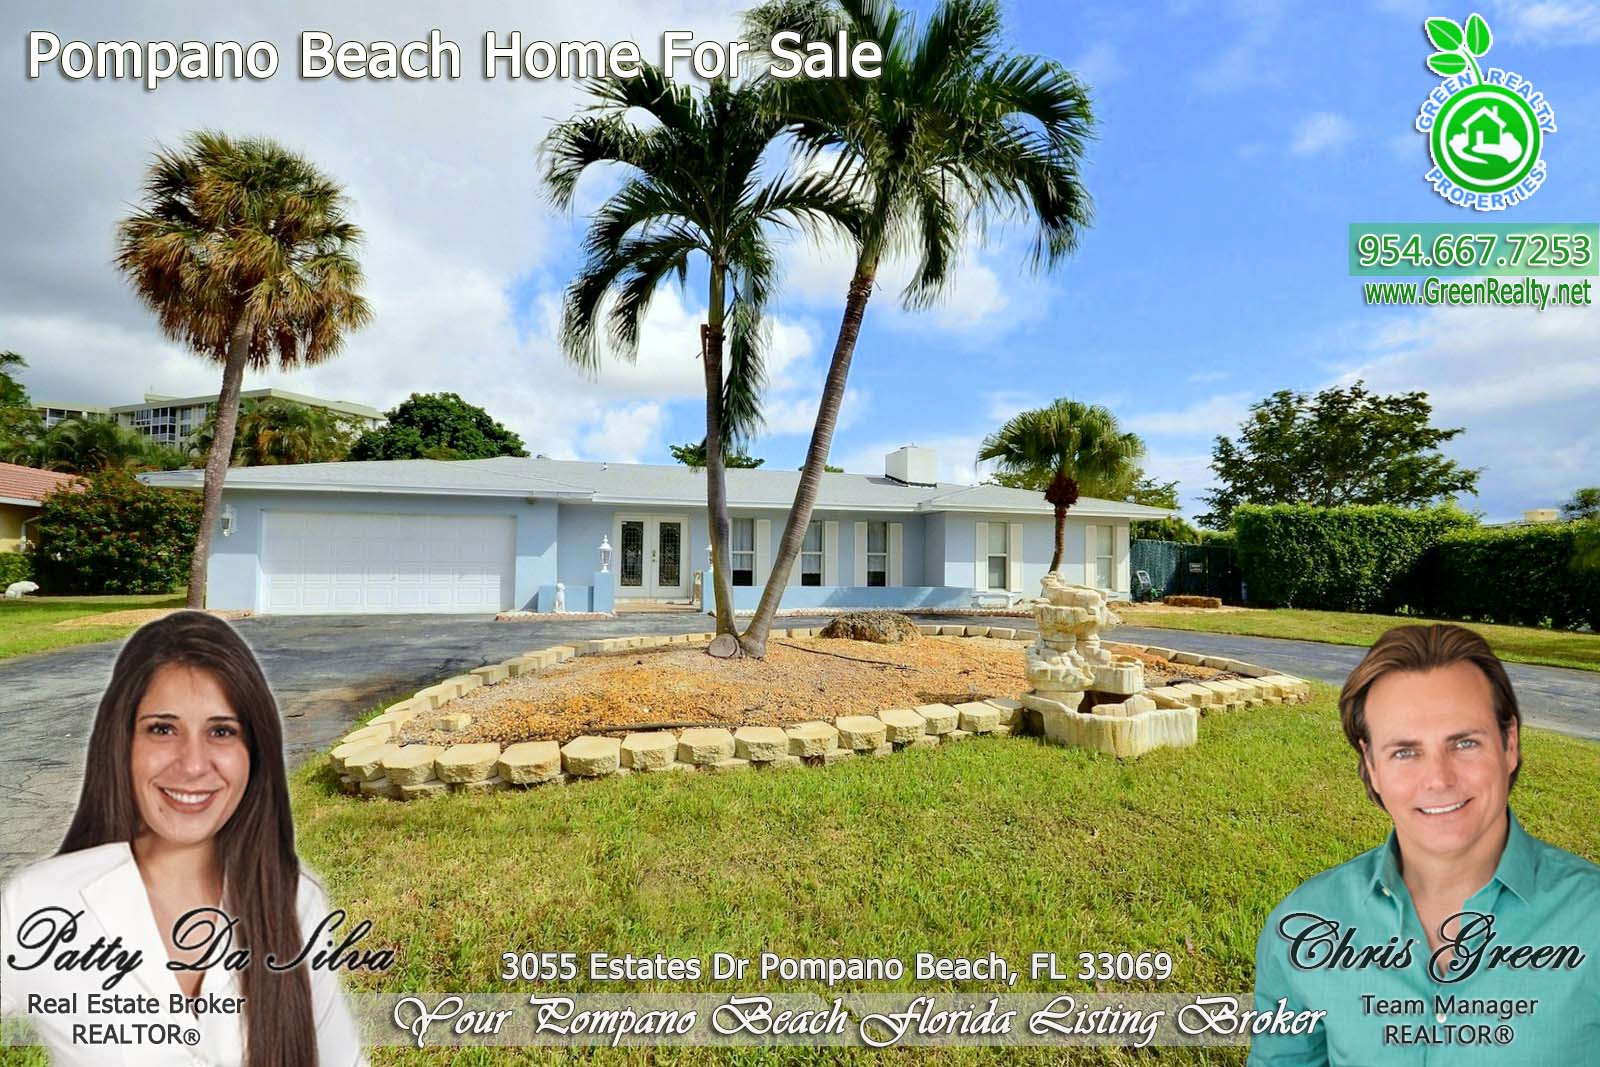 5 Homes For Sale in Pompano Beach (7)